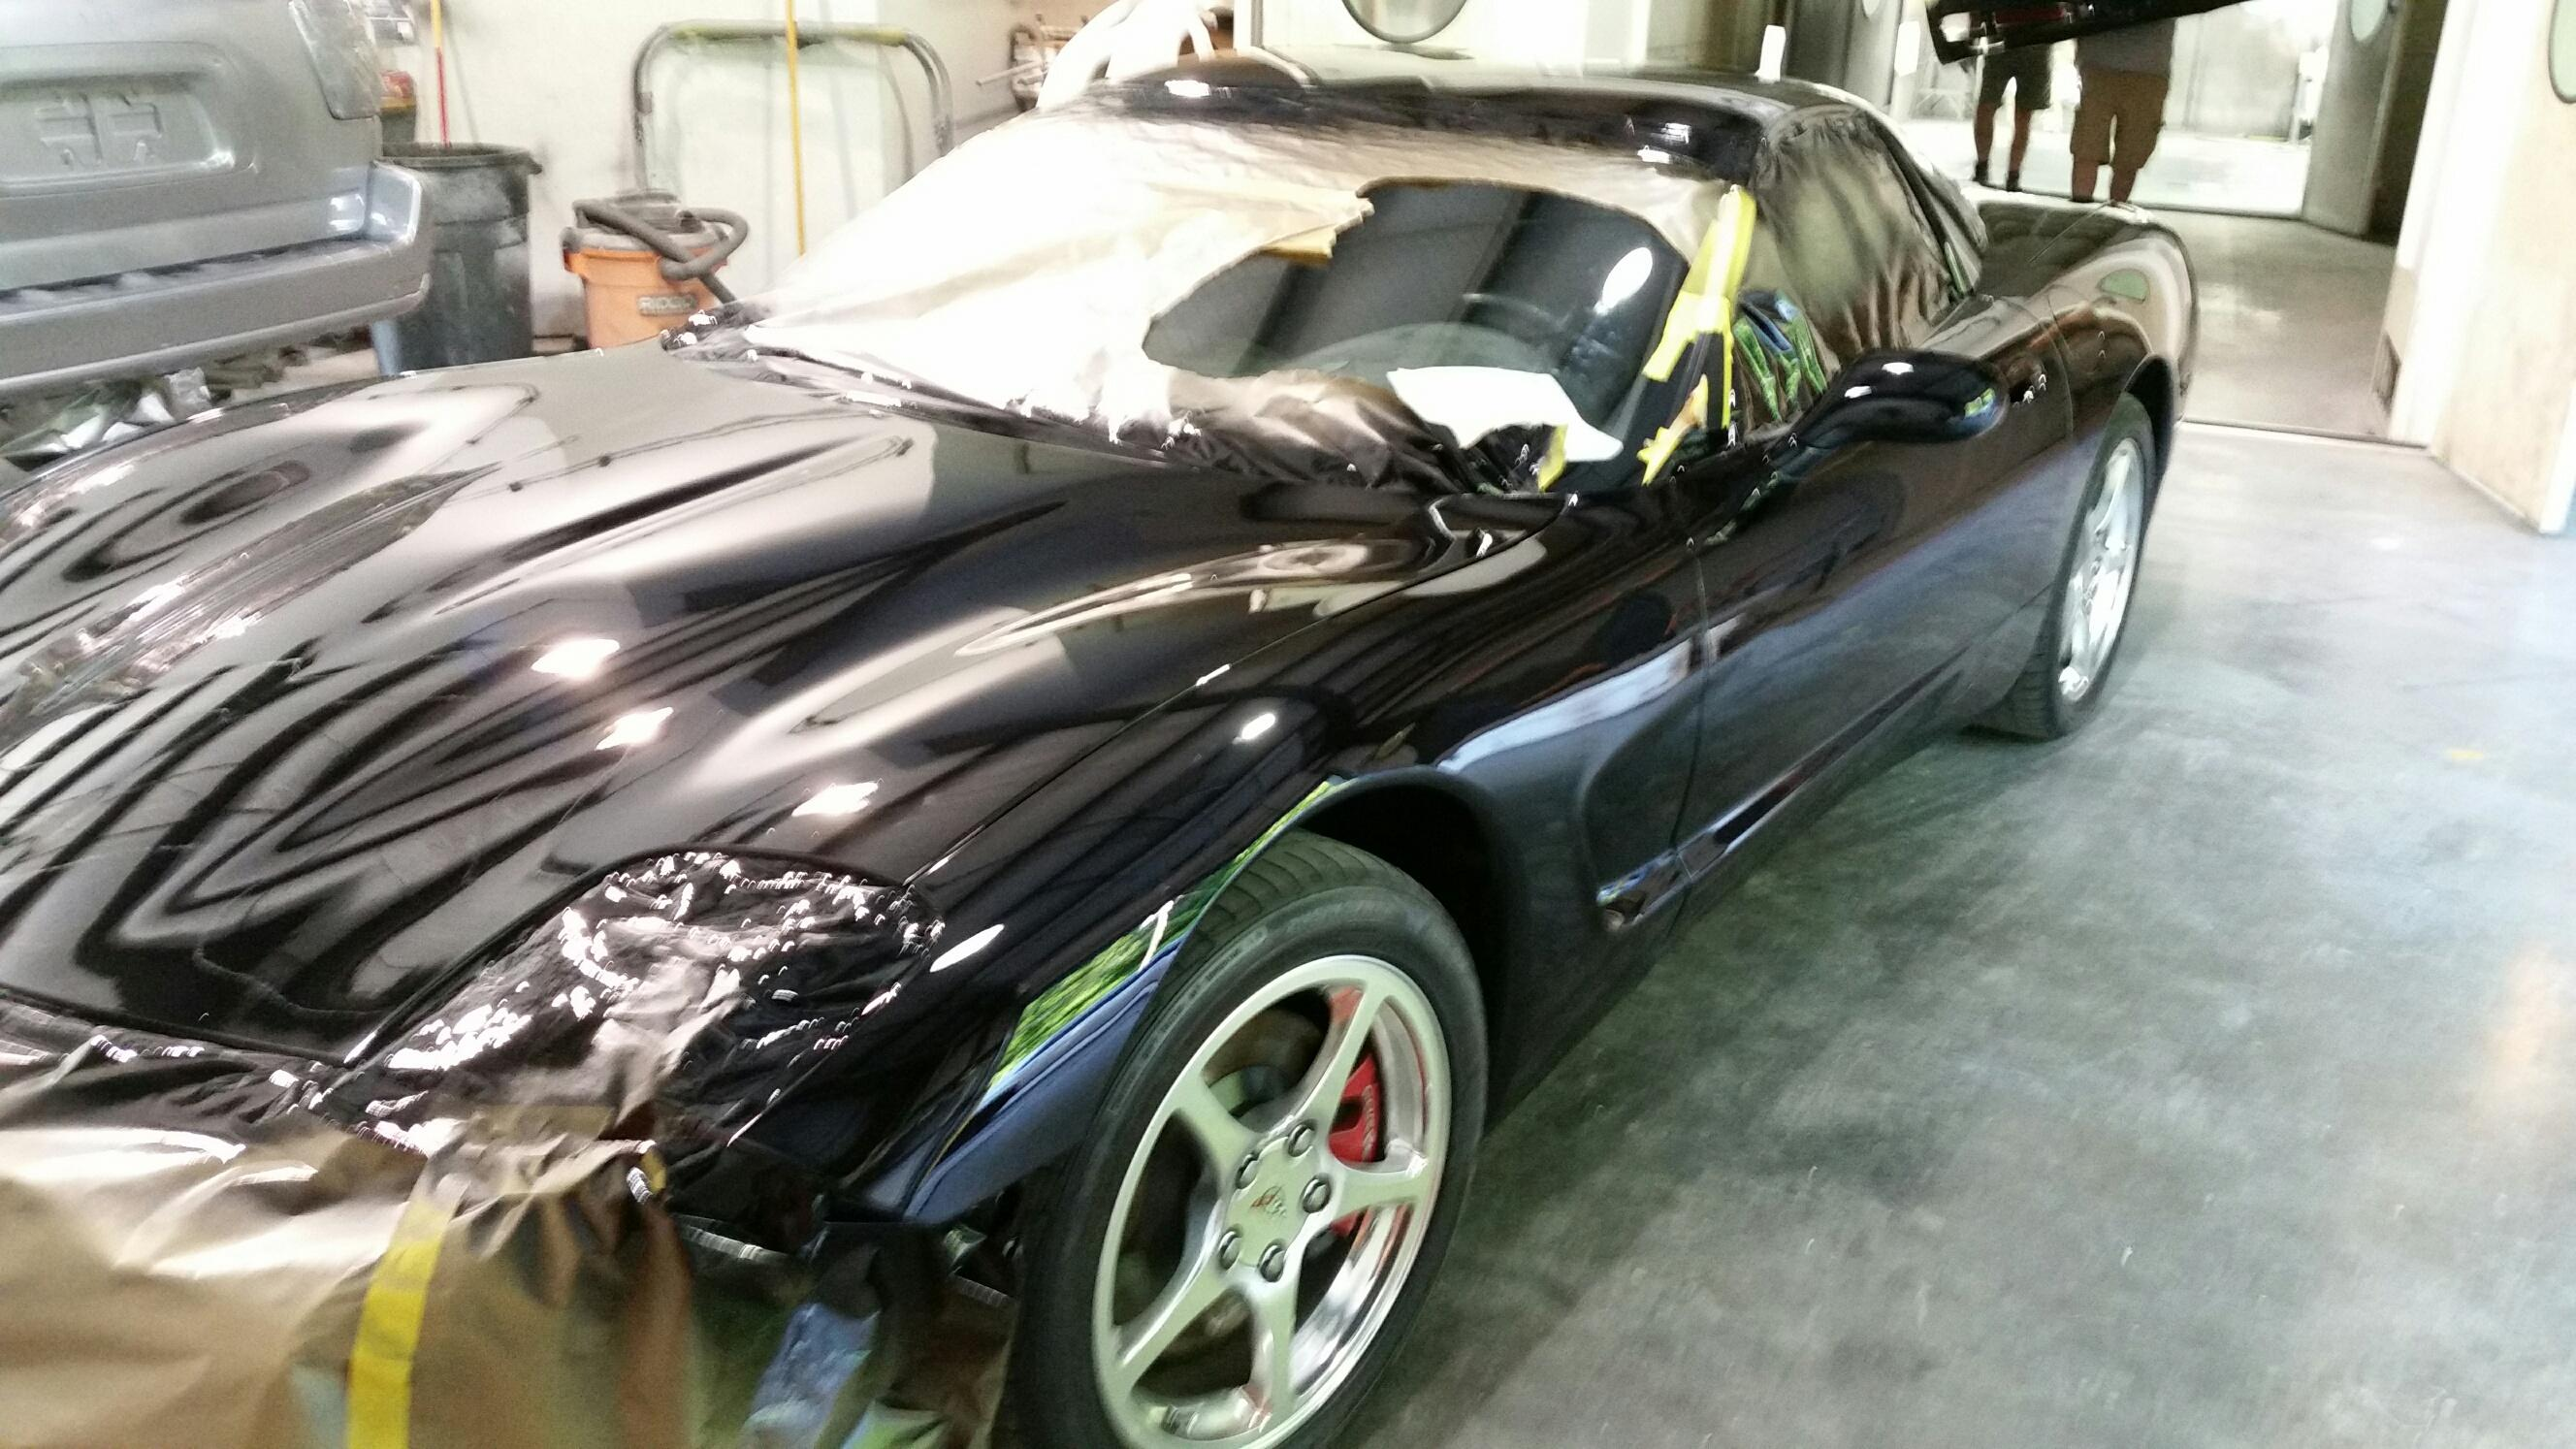 Maaco Collision Repair & Auto Painting In Knoxville, TN